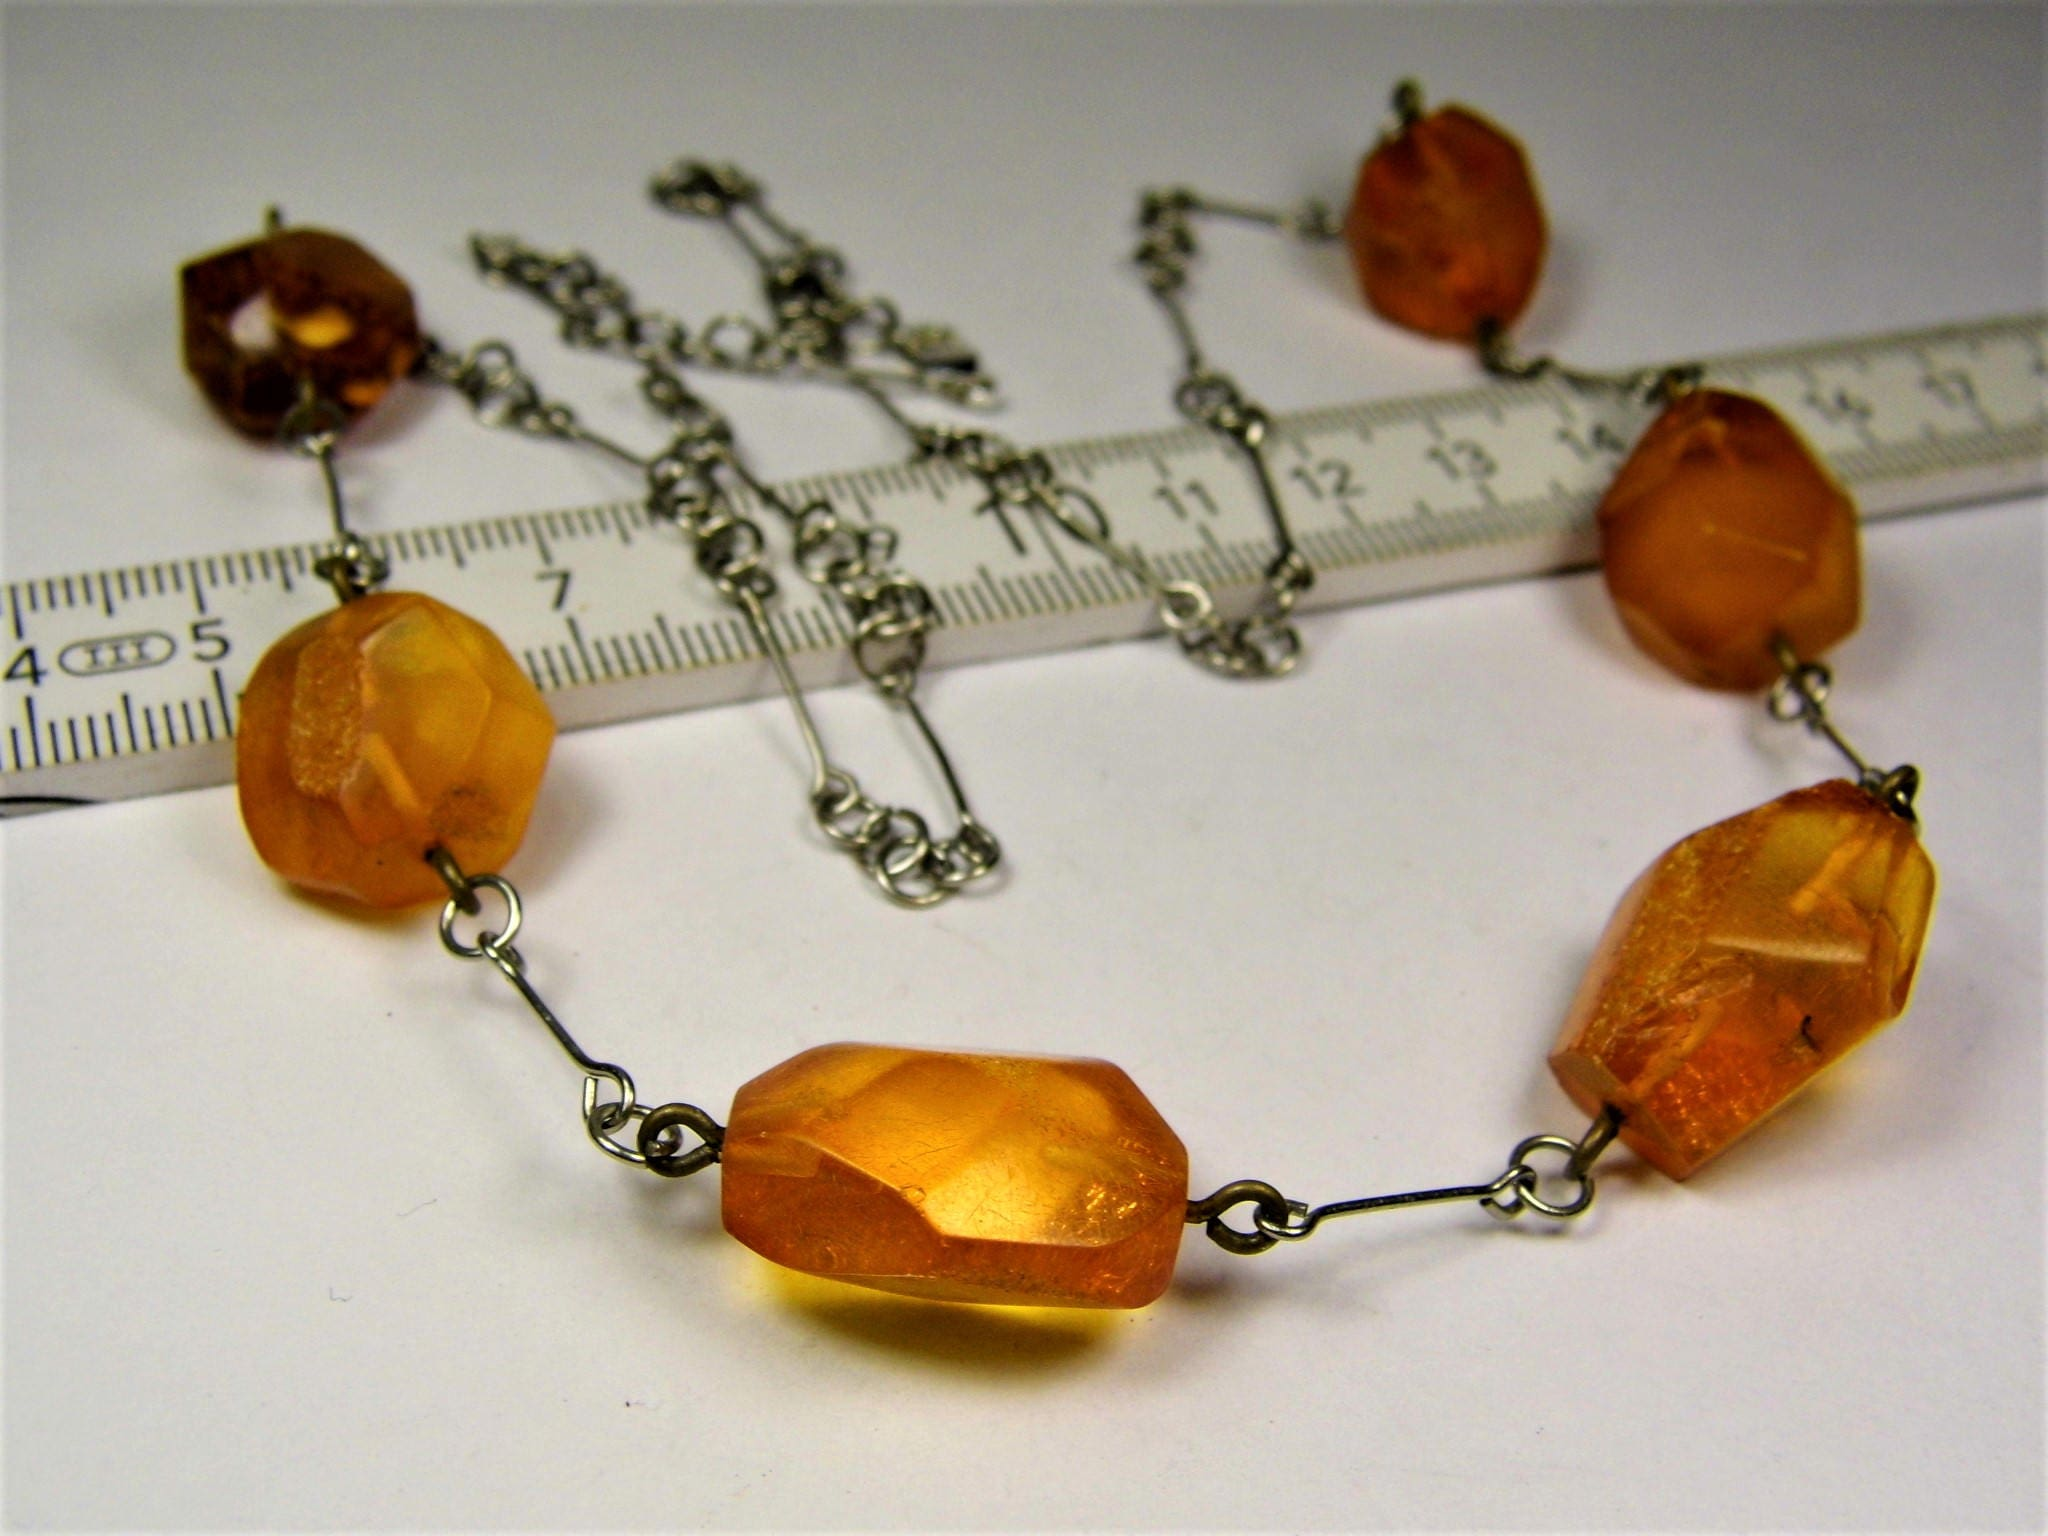 Baltic Amber stone old vintage retro antique unique necklace natural genuine stones authentic women/'s jewelry 26 grams FREE SHIPPING 1834